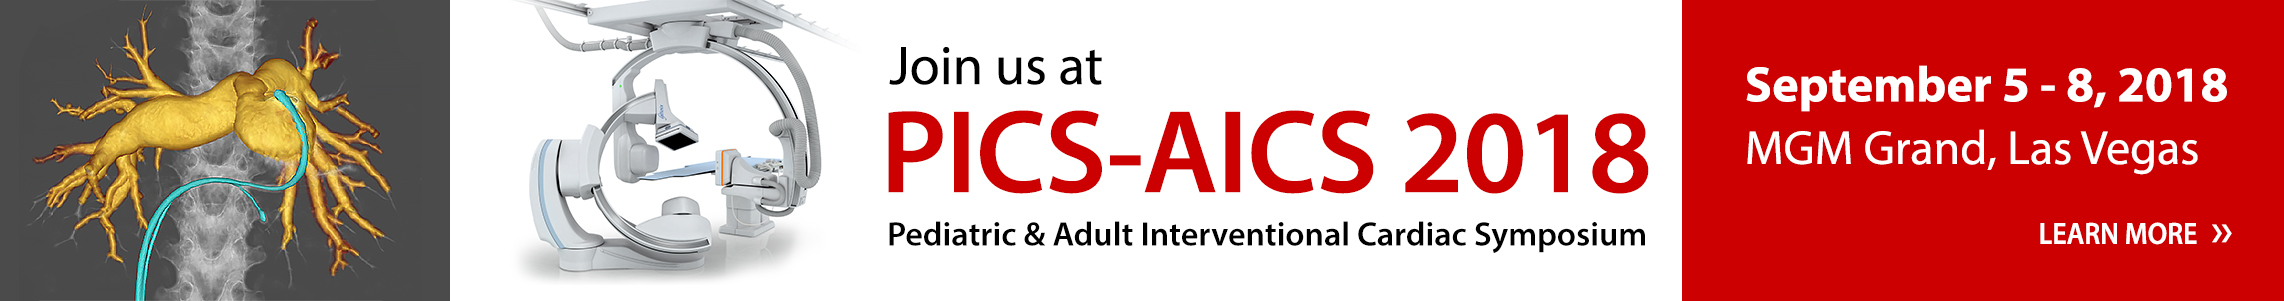 Visit us at PICS-AICS 2018